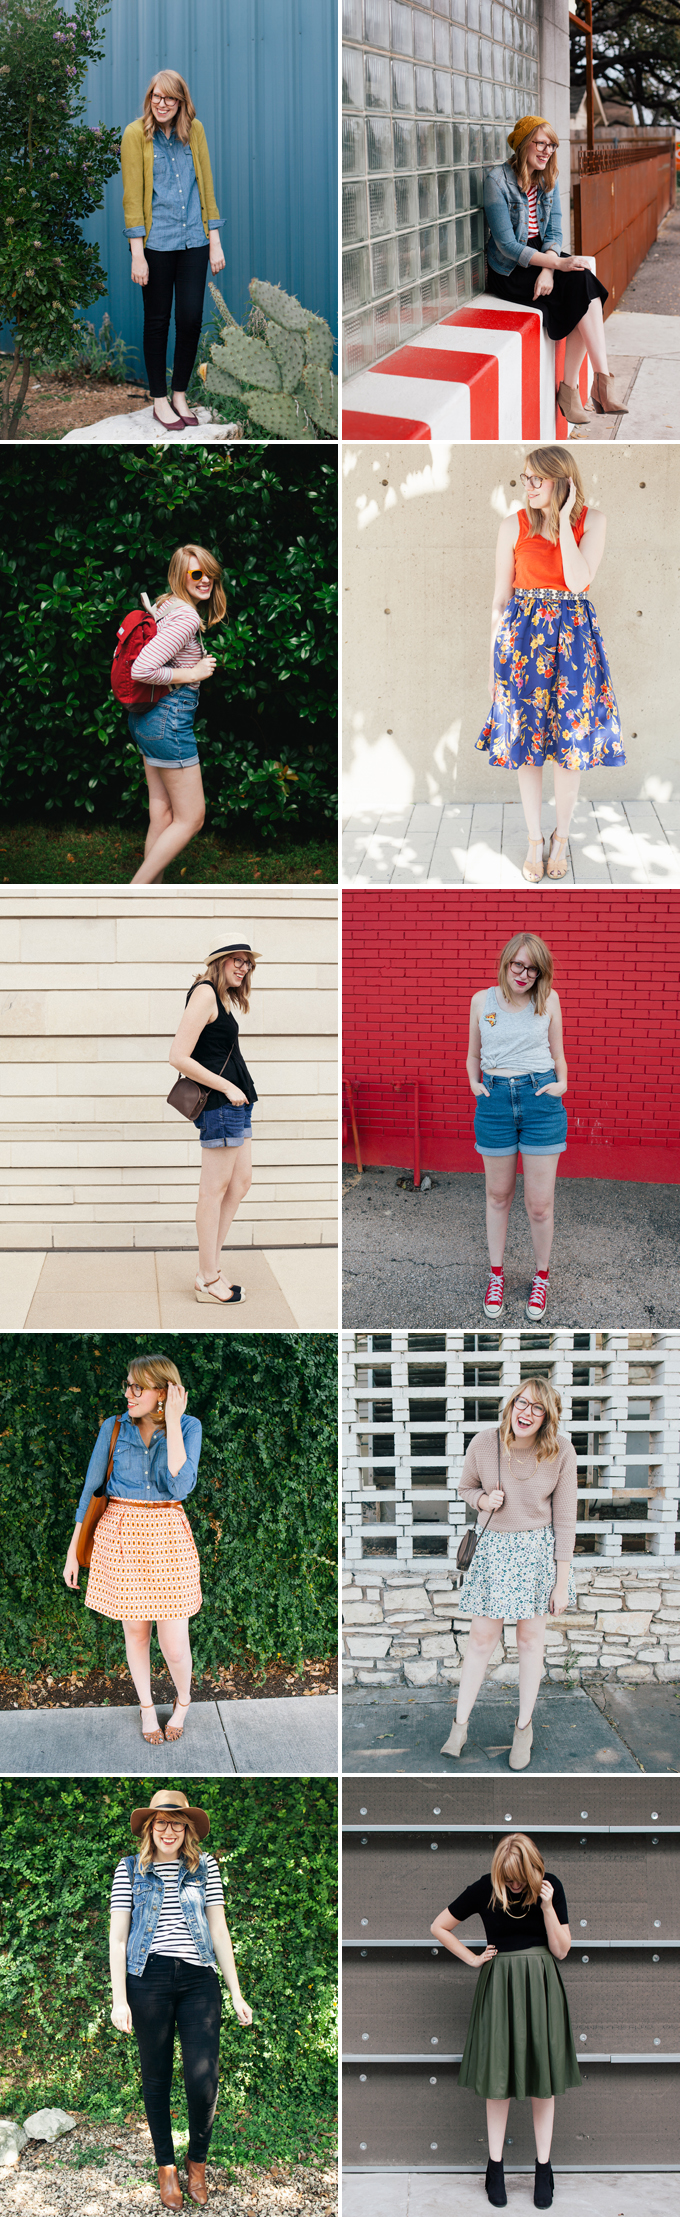 best outfits 2015